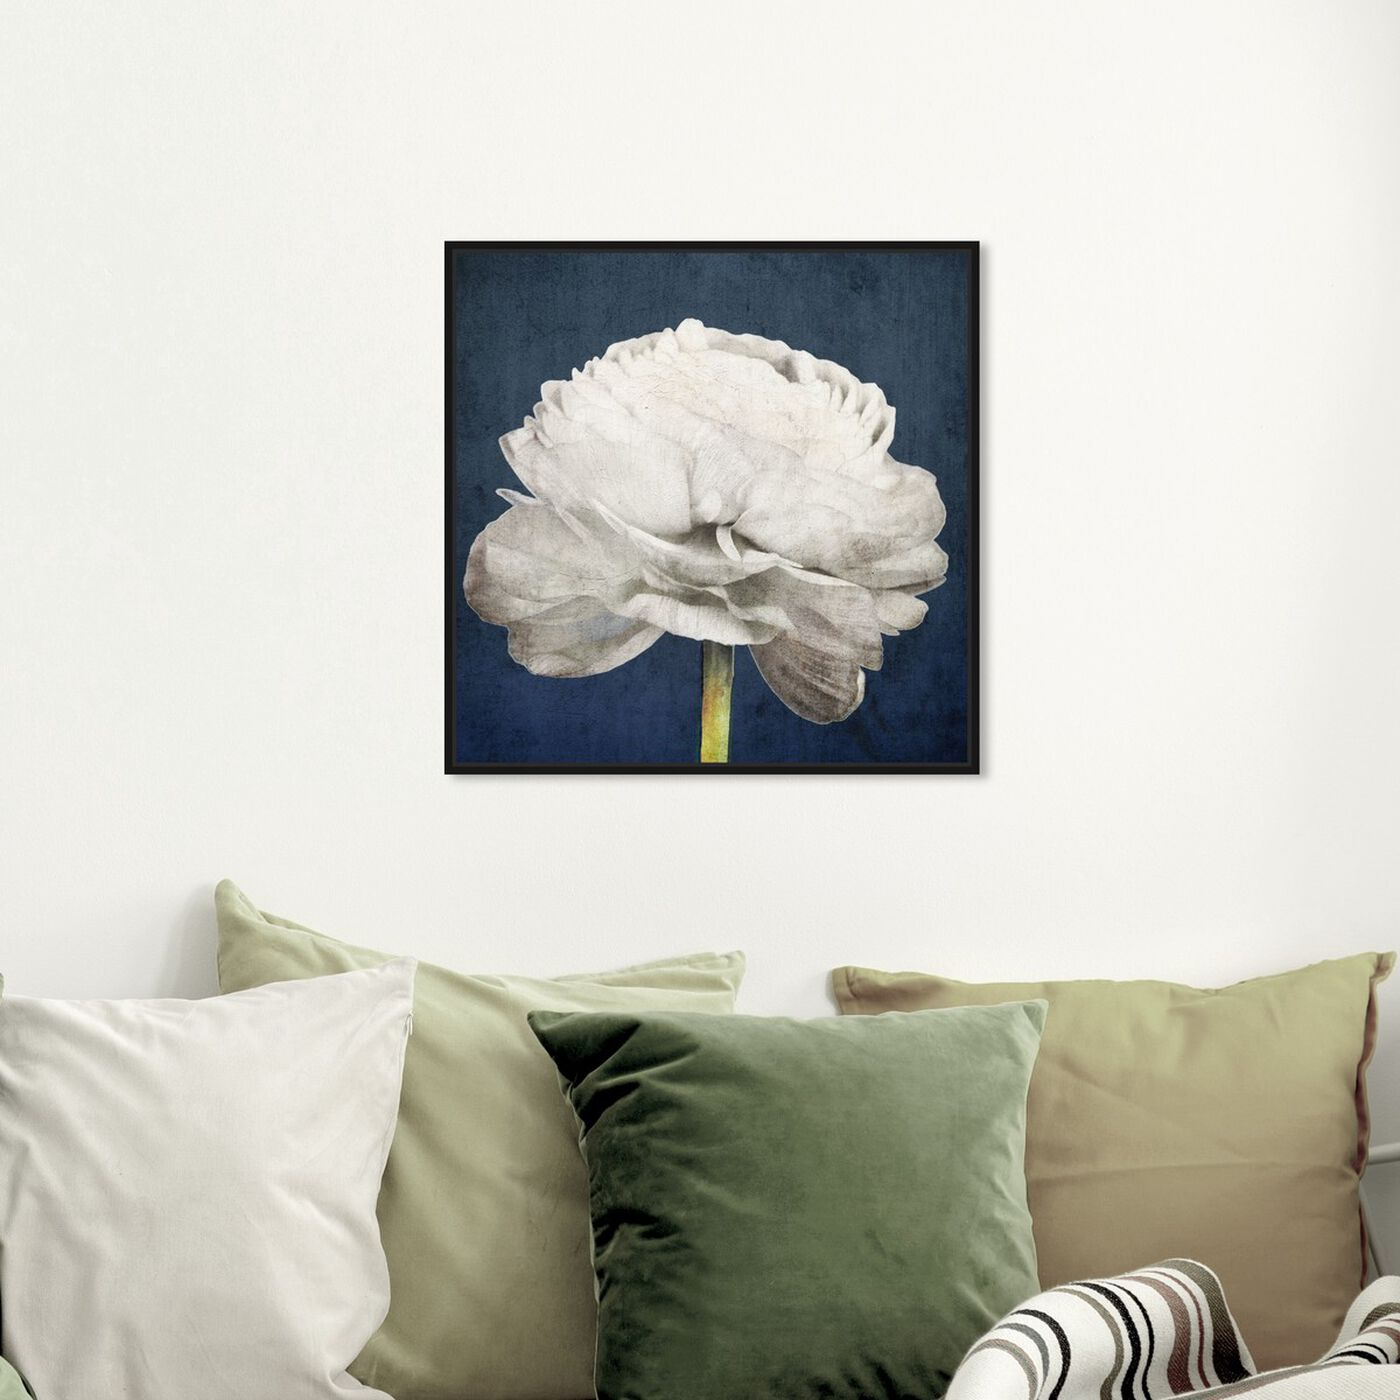 Hanging view of Pretty View featuring floral and botanical and florals art.